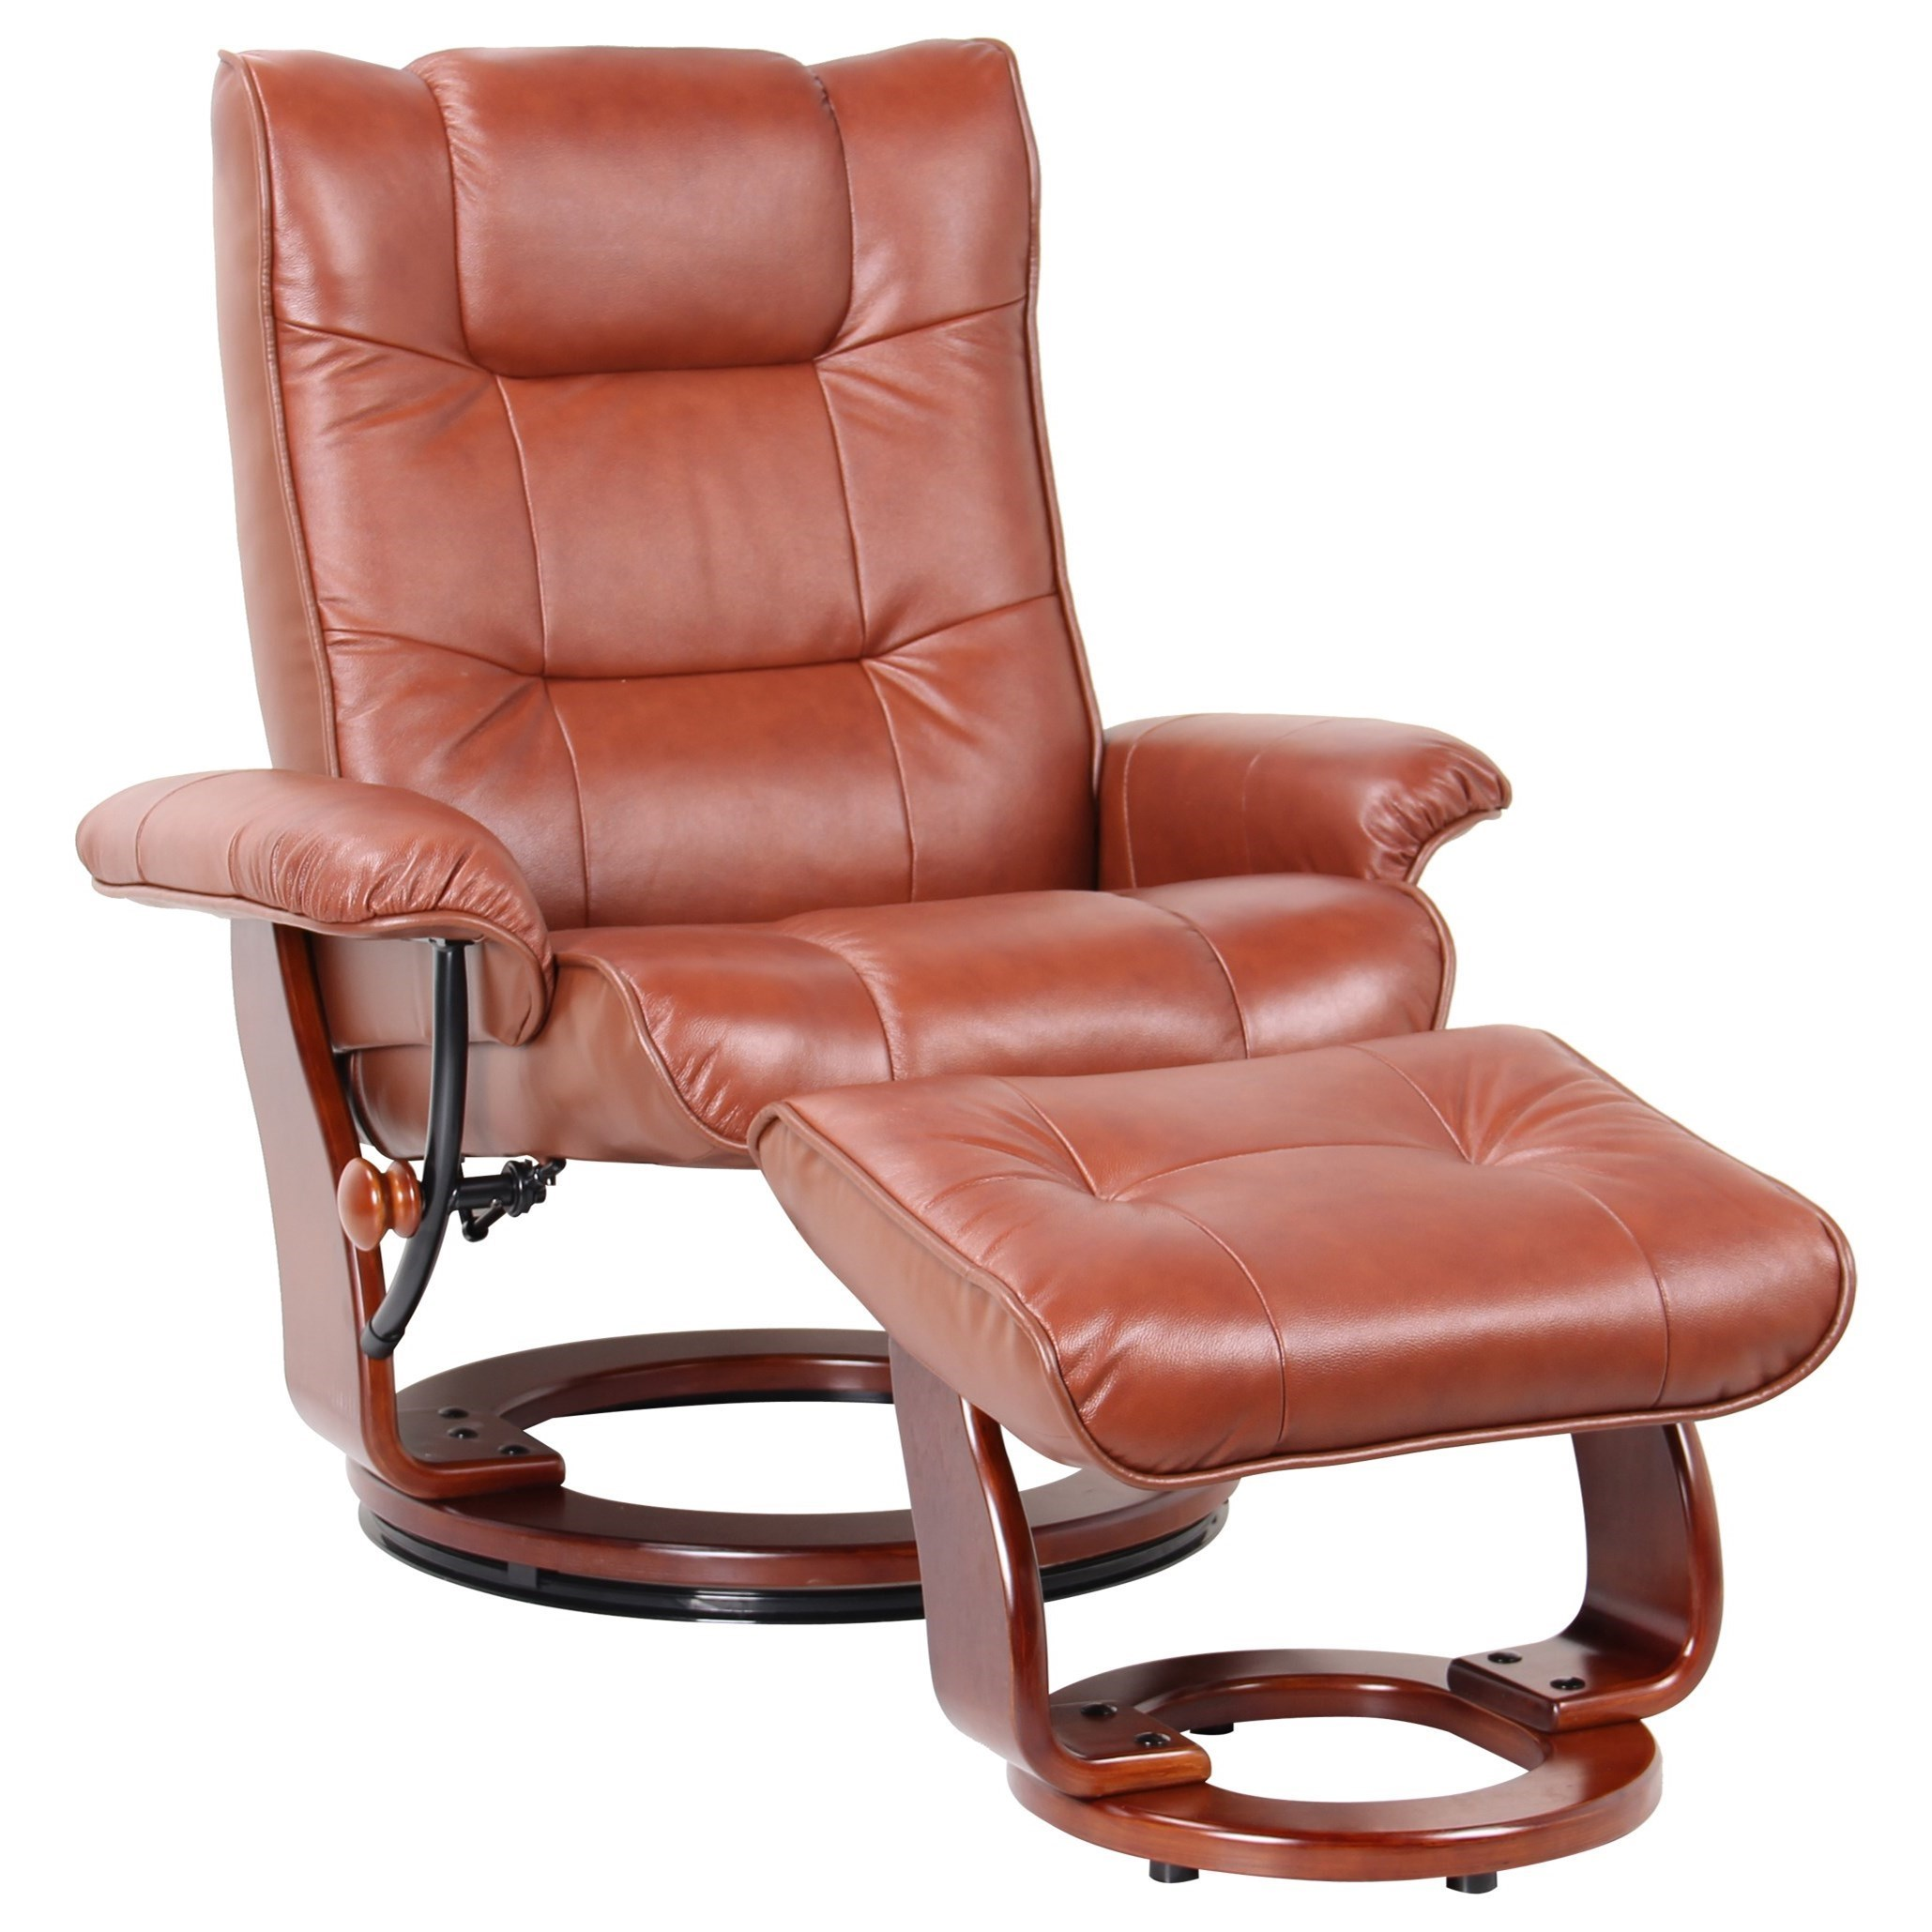 Benchmaster Monterey Swivel Reclining Chair And Ottoman